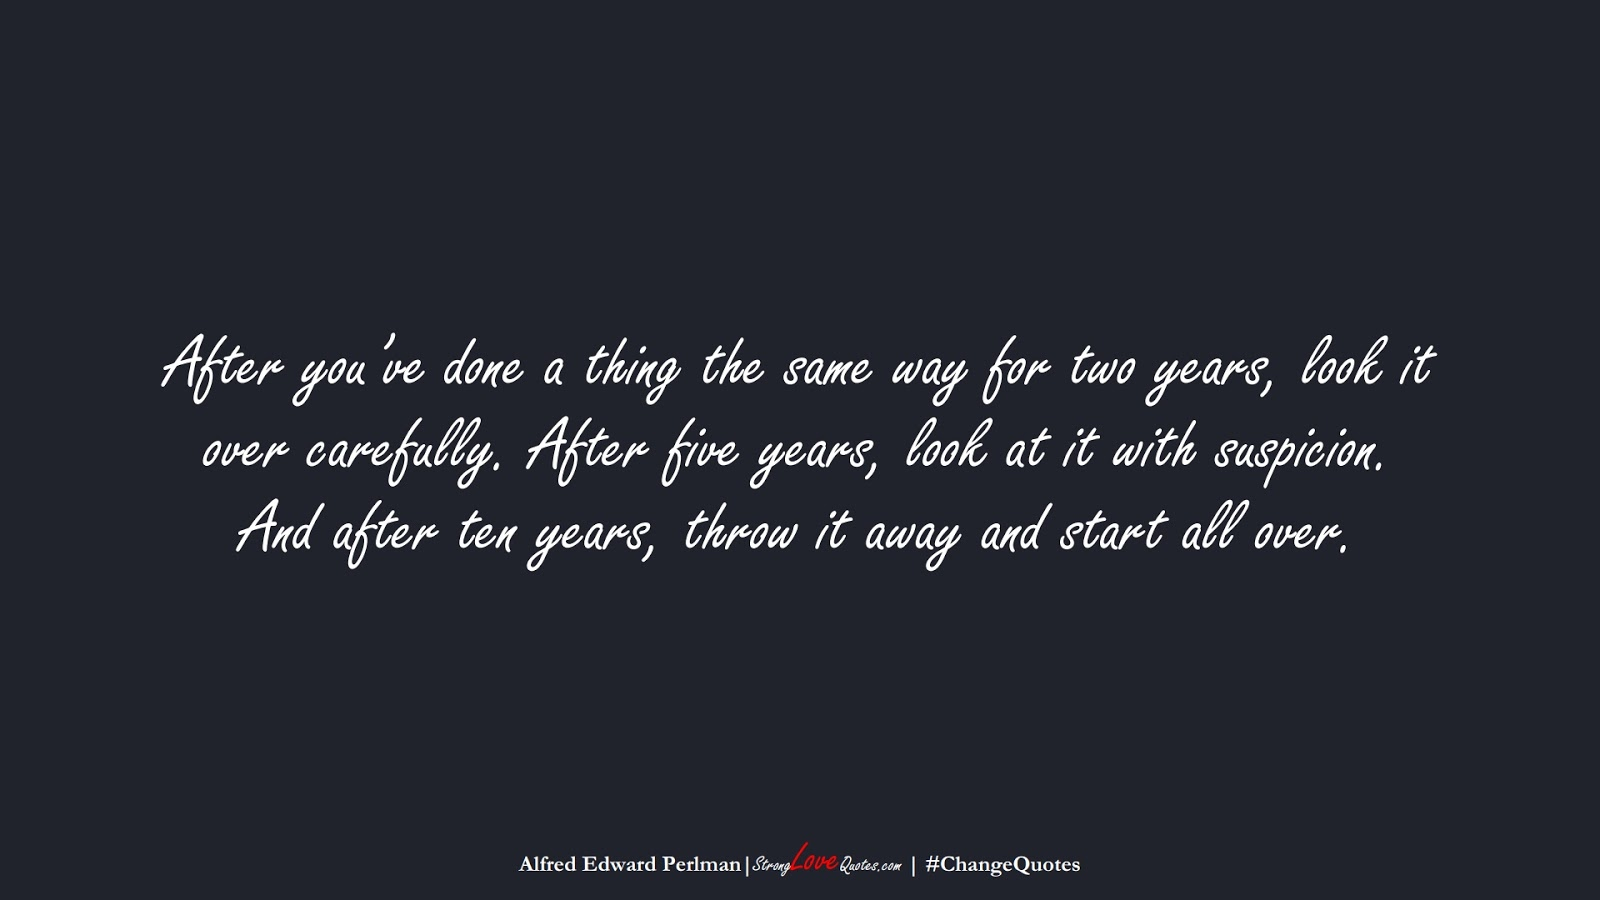 After you've done a thing the same way for two years, look it over carefully. After five years, look at it with suspicion. And after ten years, throw it away and start all over. (Alfred Edward Perlman);  #ChangeQuotes